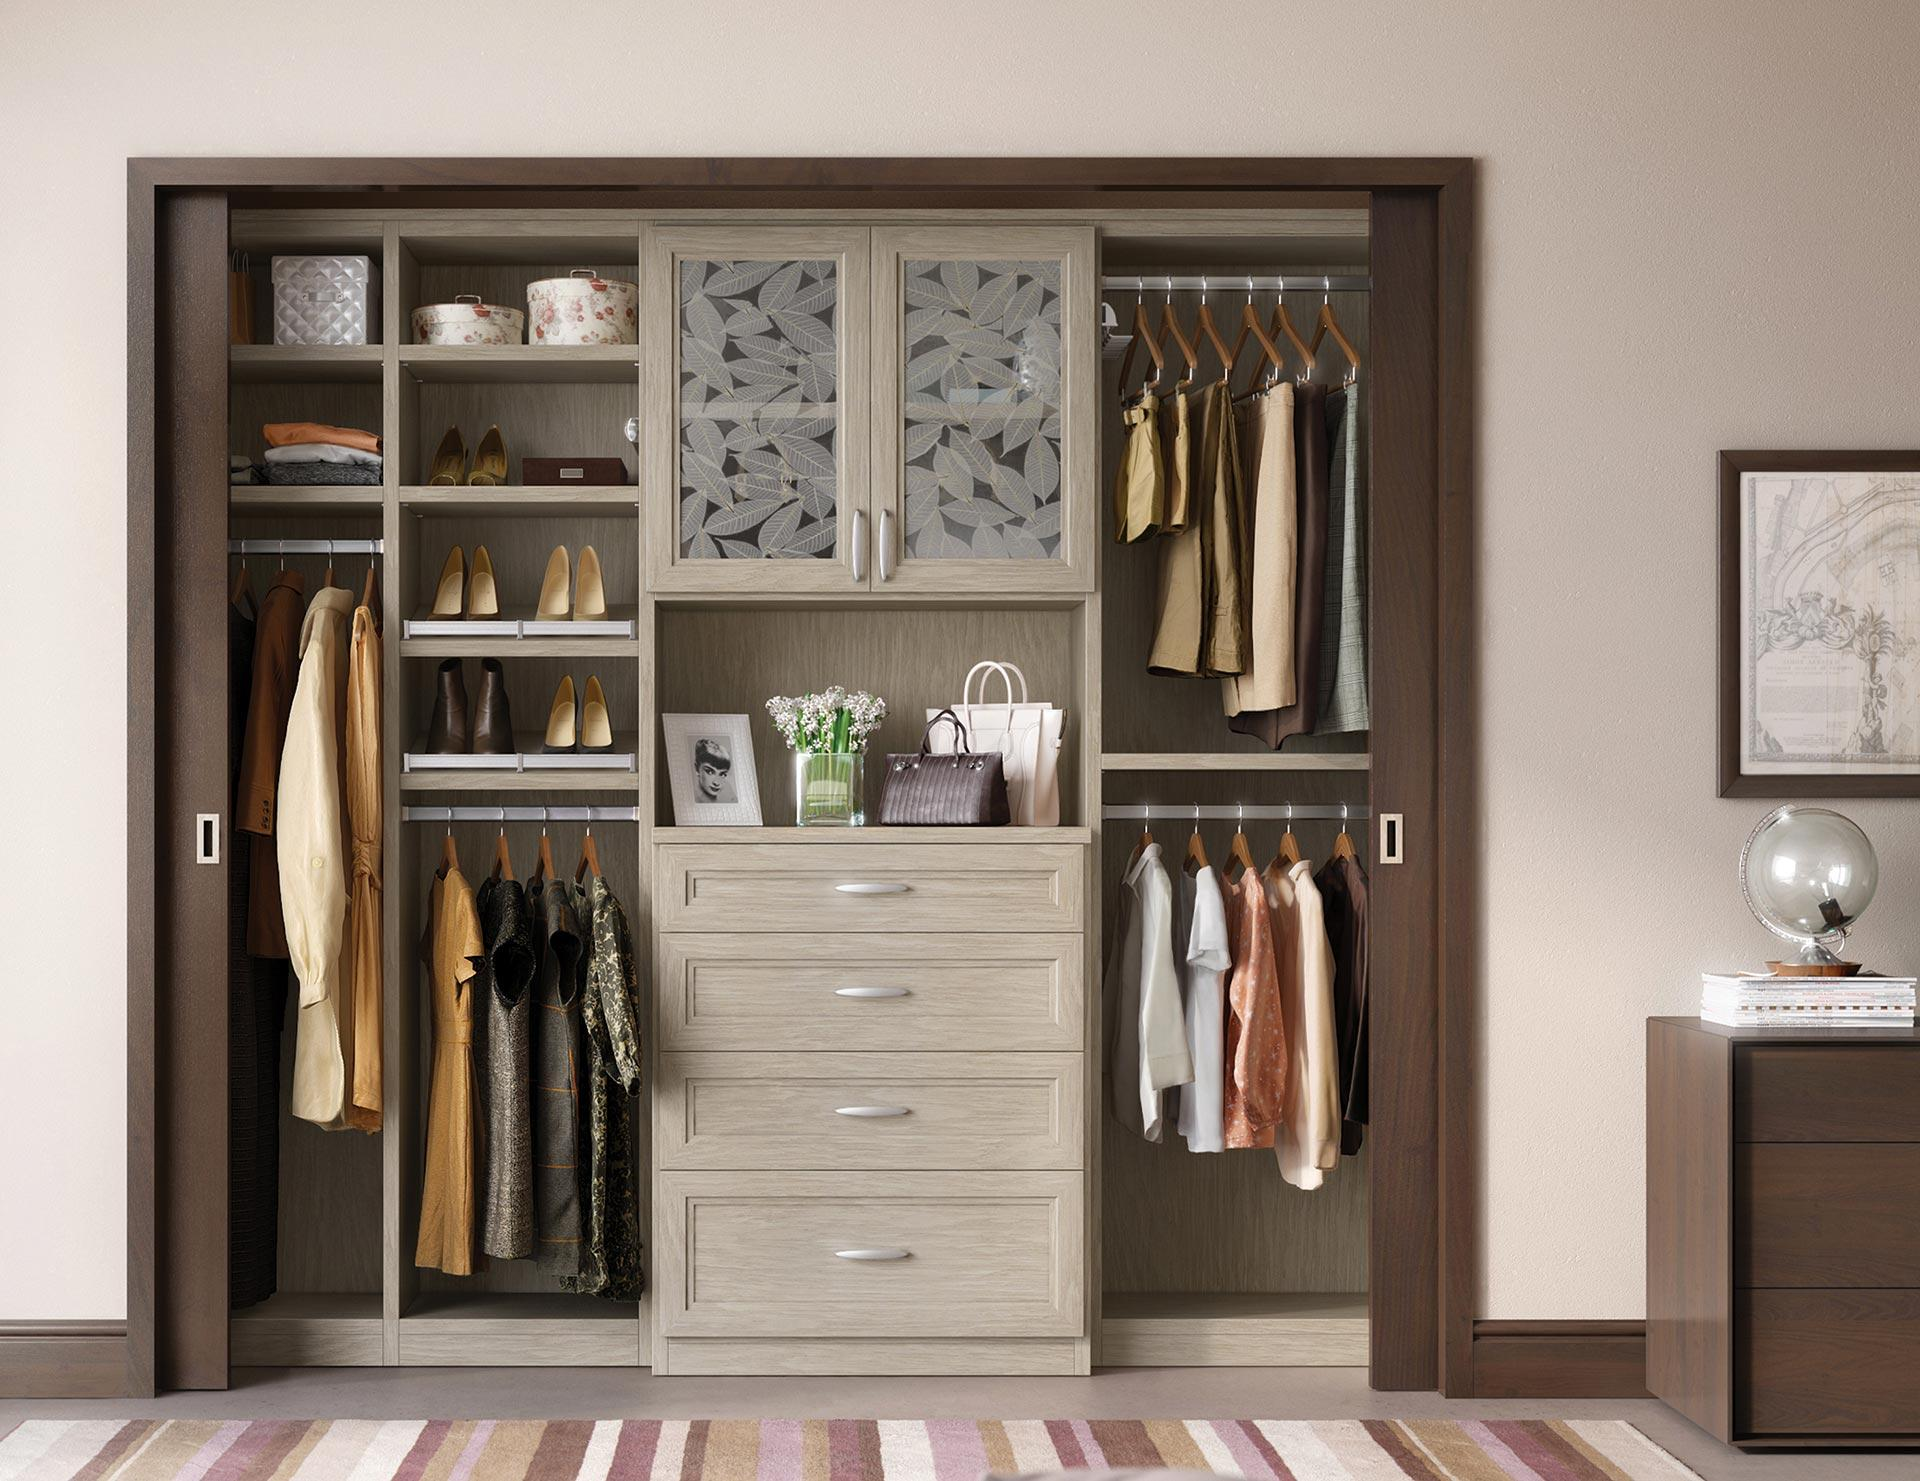 Design Closet Ideas reach in closets designs ideas by california modern custom closet